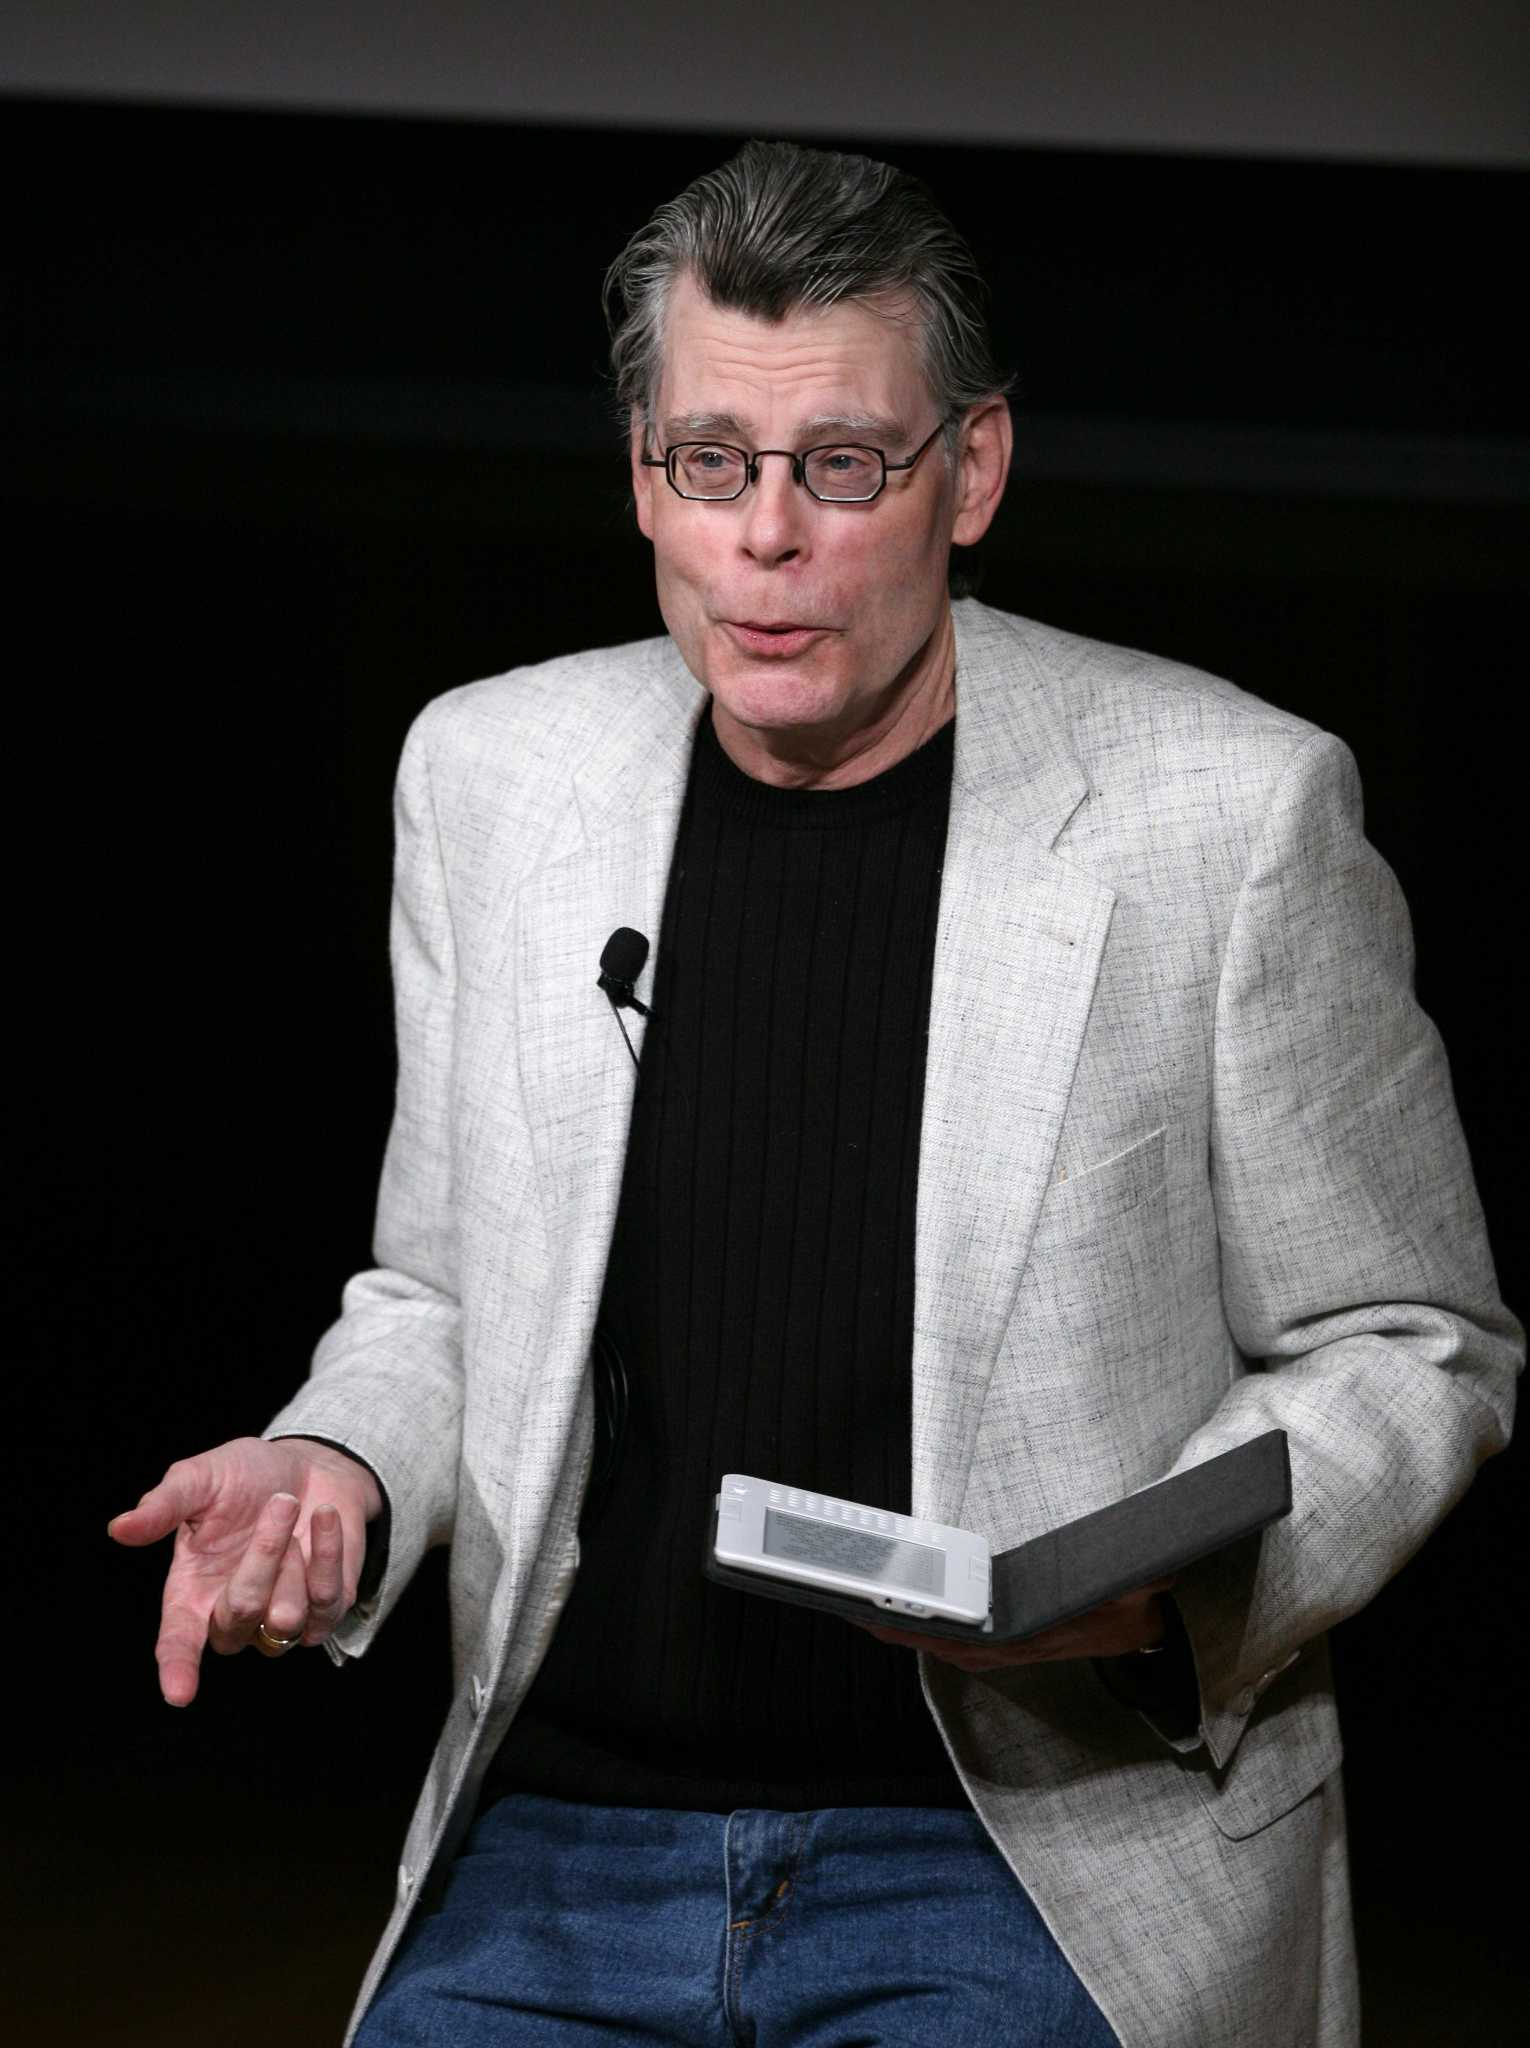 Author Stephen King's plea to Texans: Don't re-elect Ted Cruz